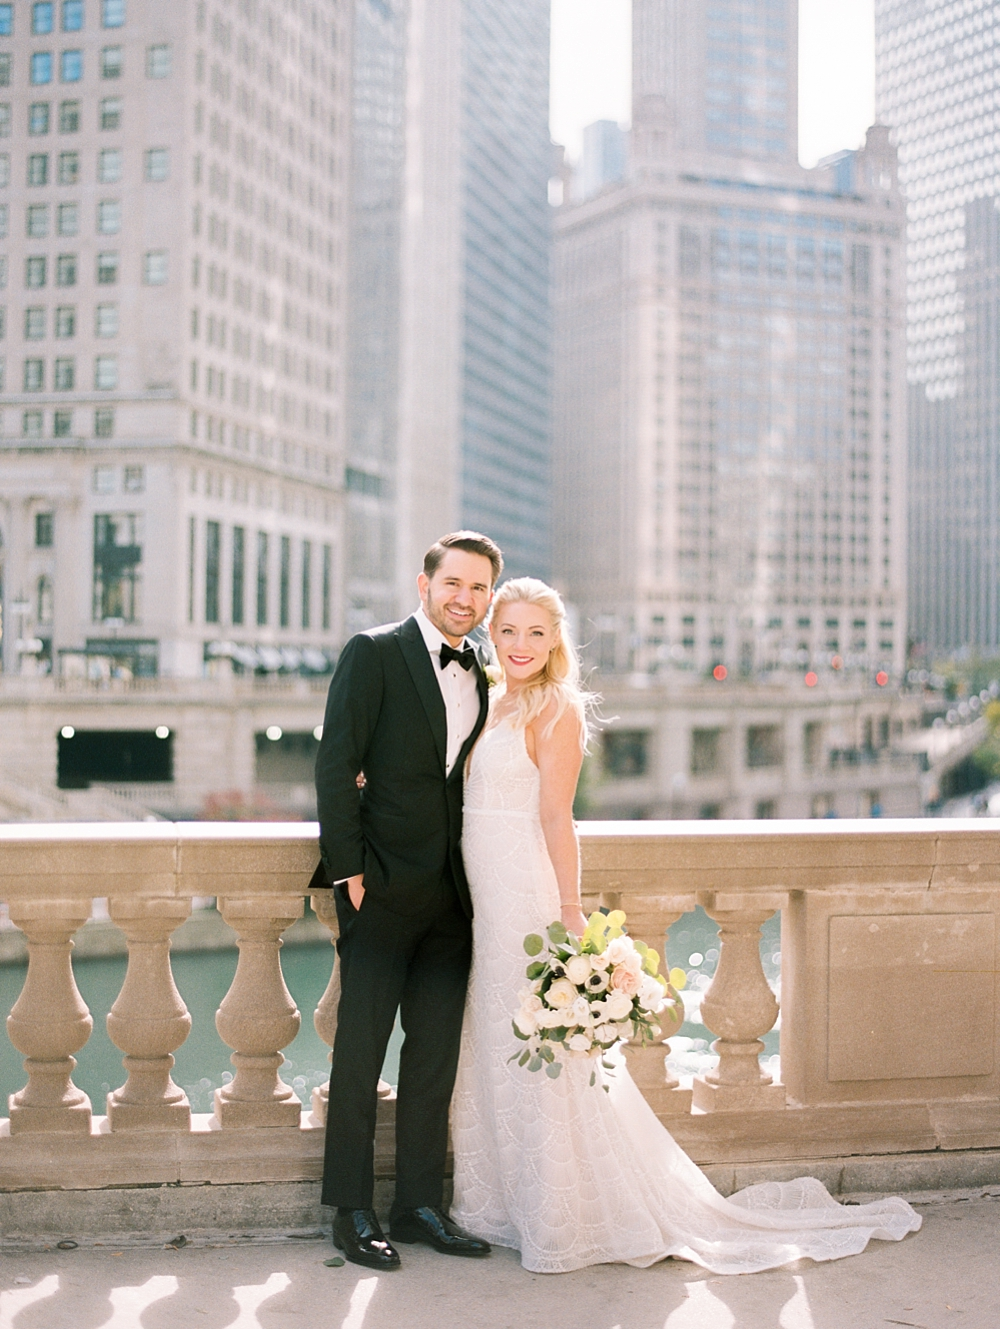 kristin-la-voie-photography-chicago-Wedding-Photographer-kimpton-gray-hotel-16